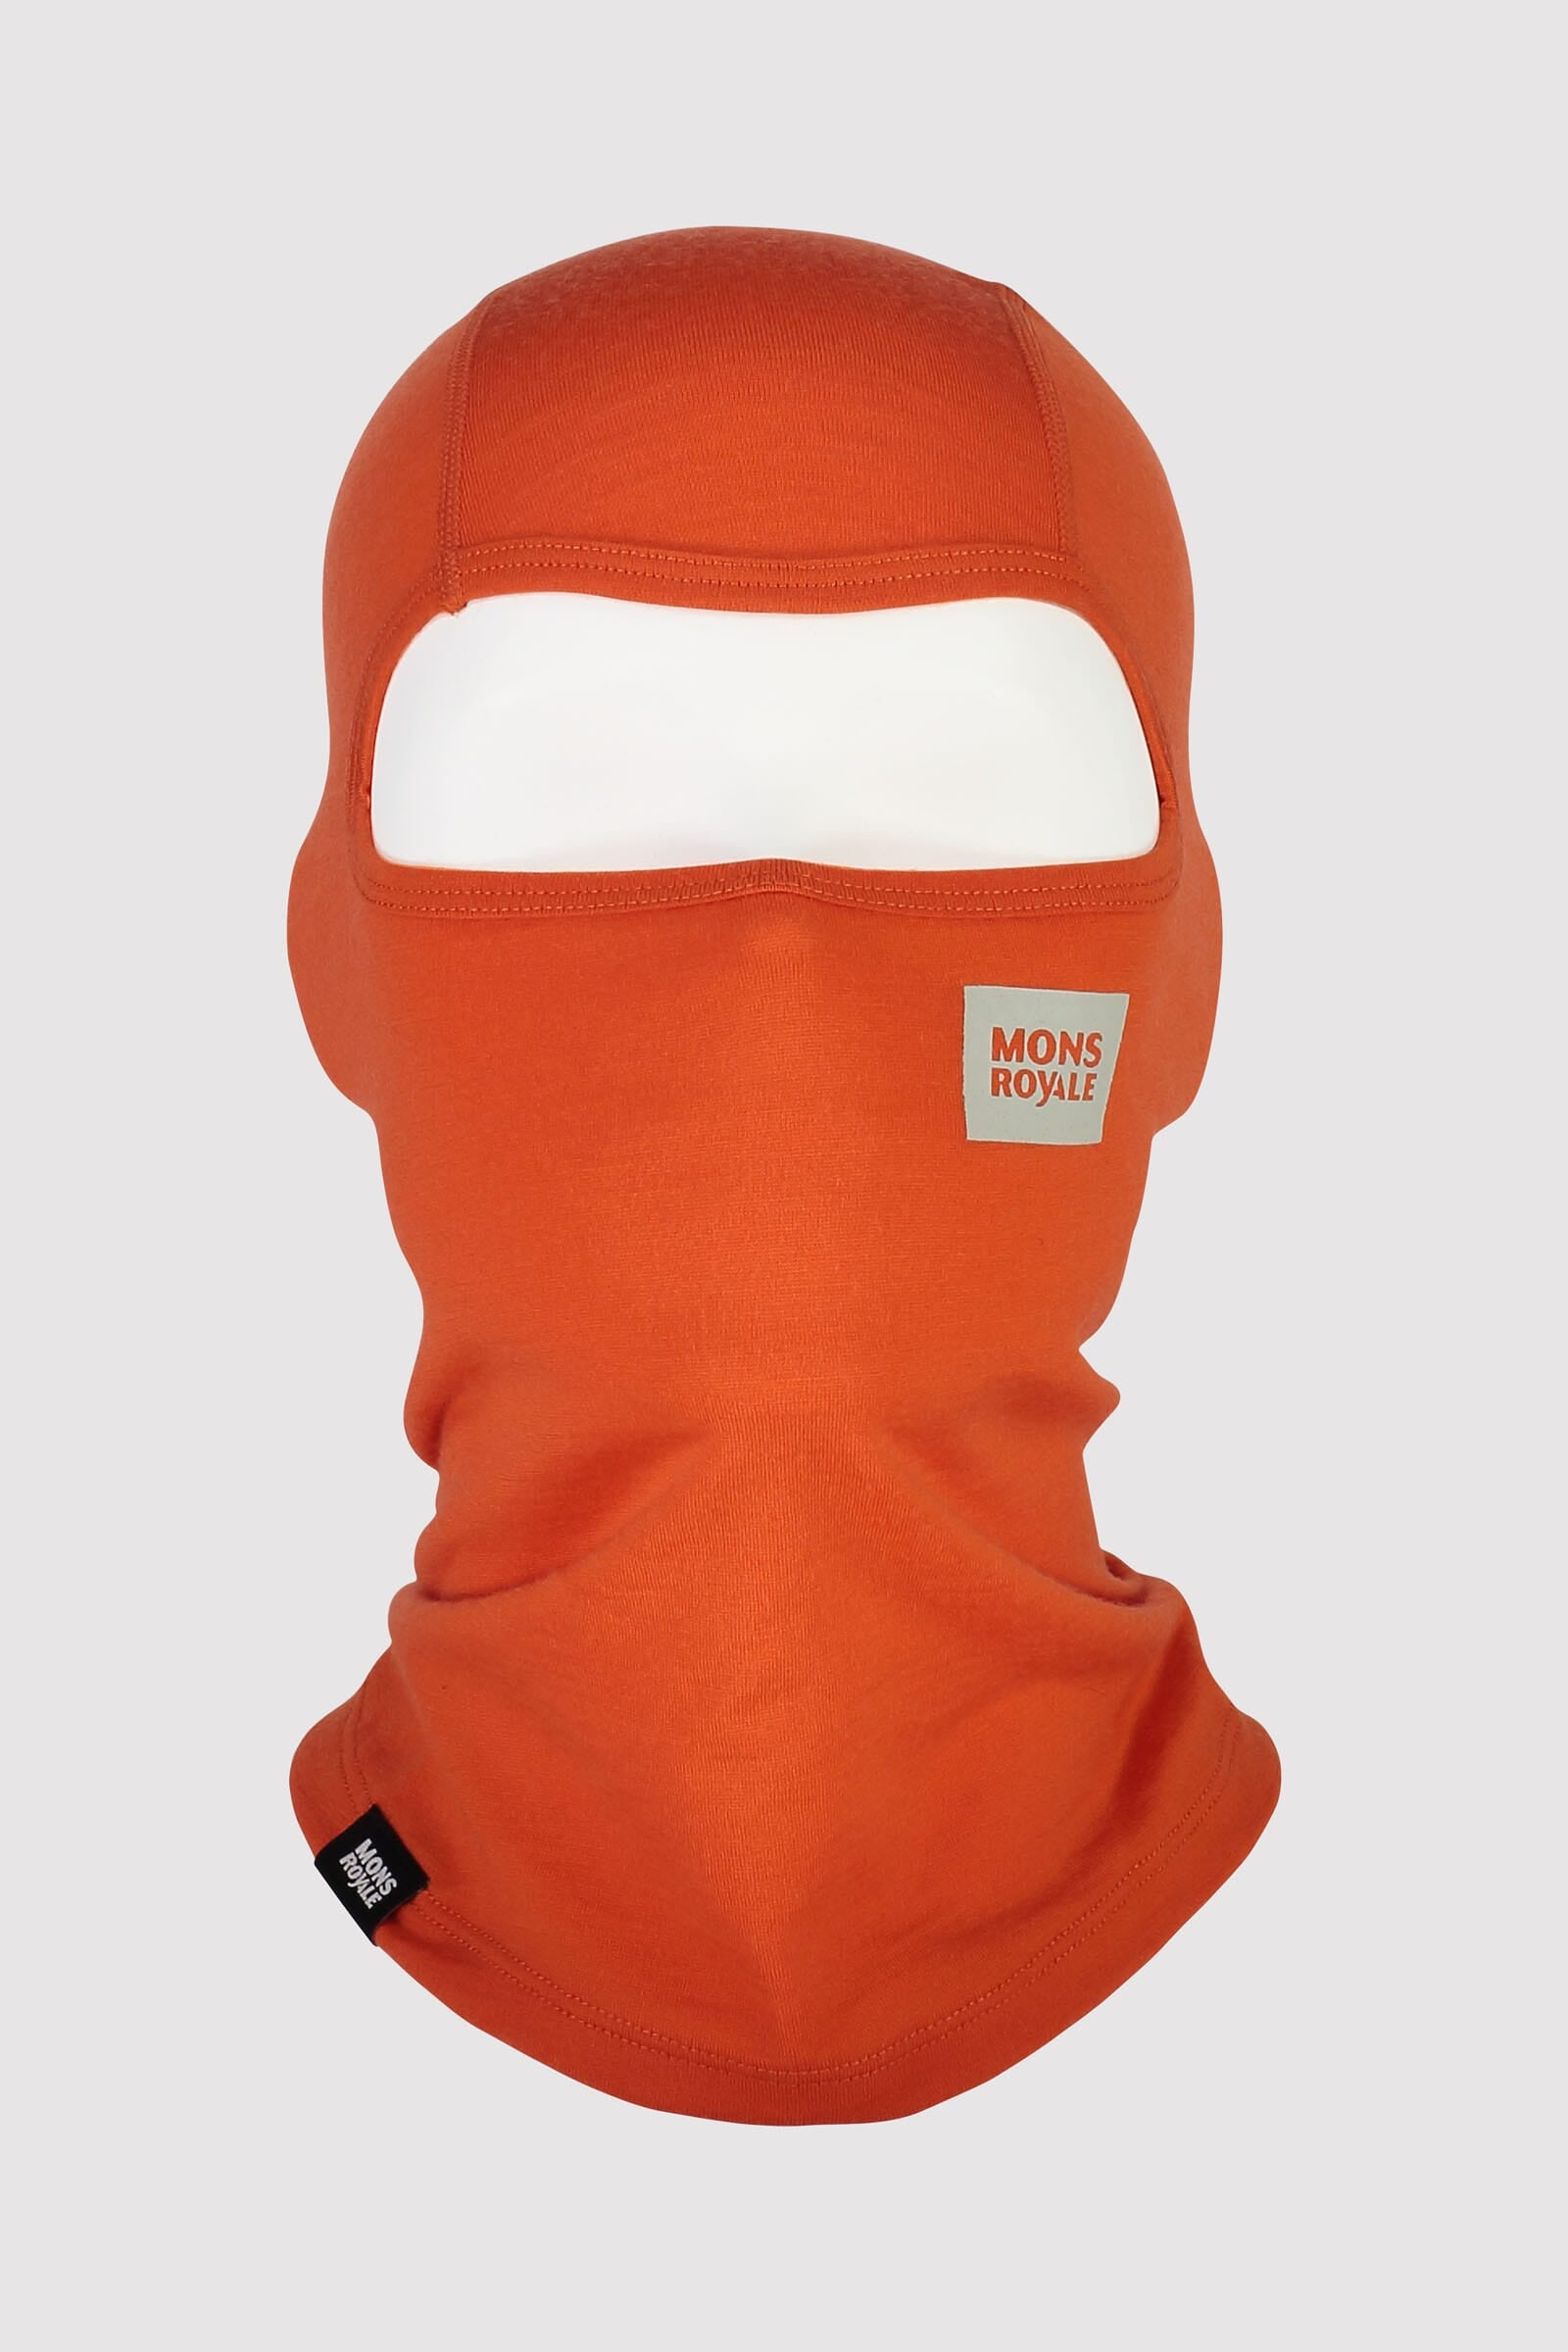 B3 Balaclava - Orange Smash